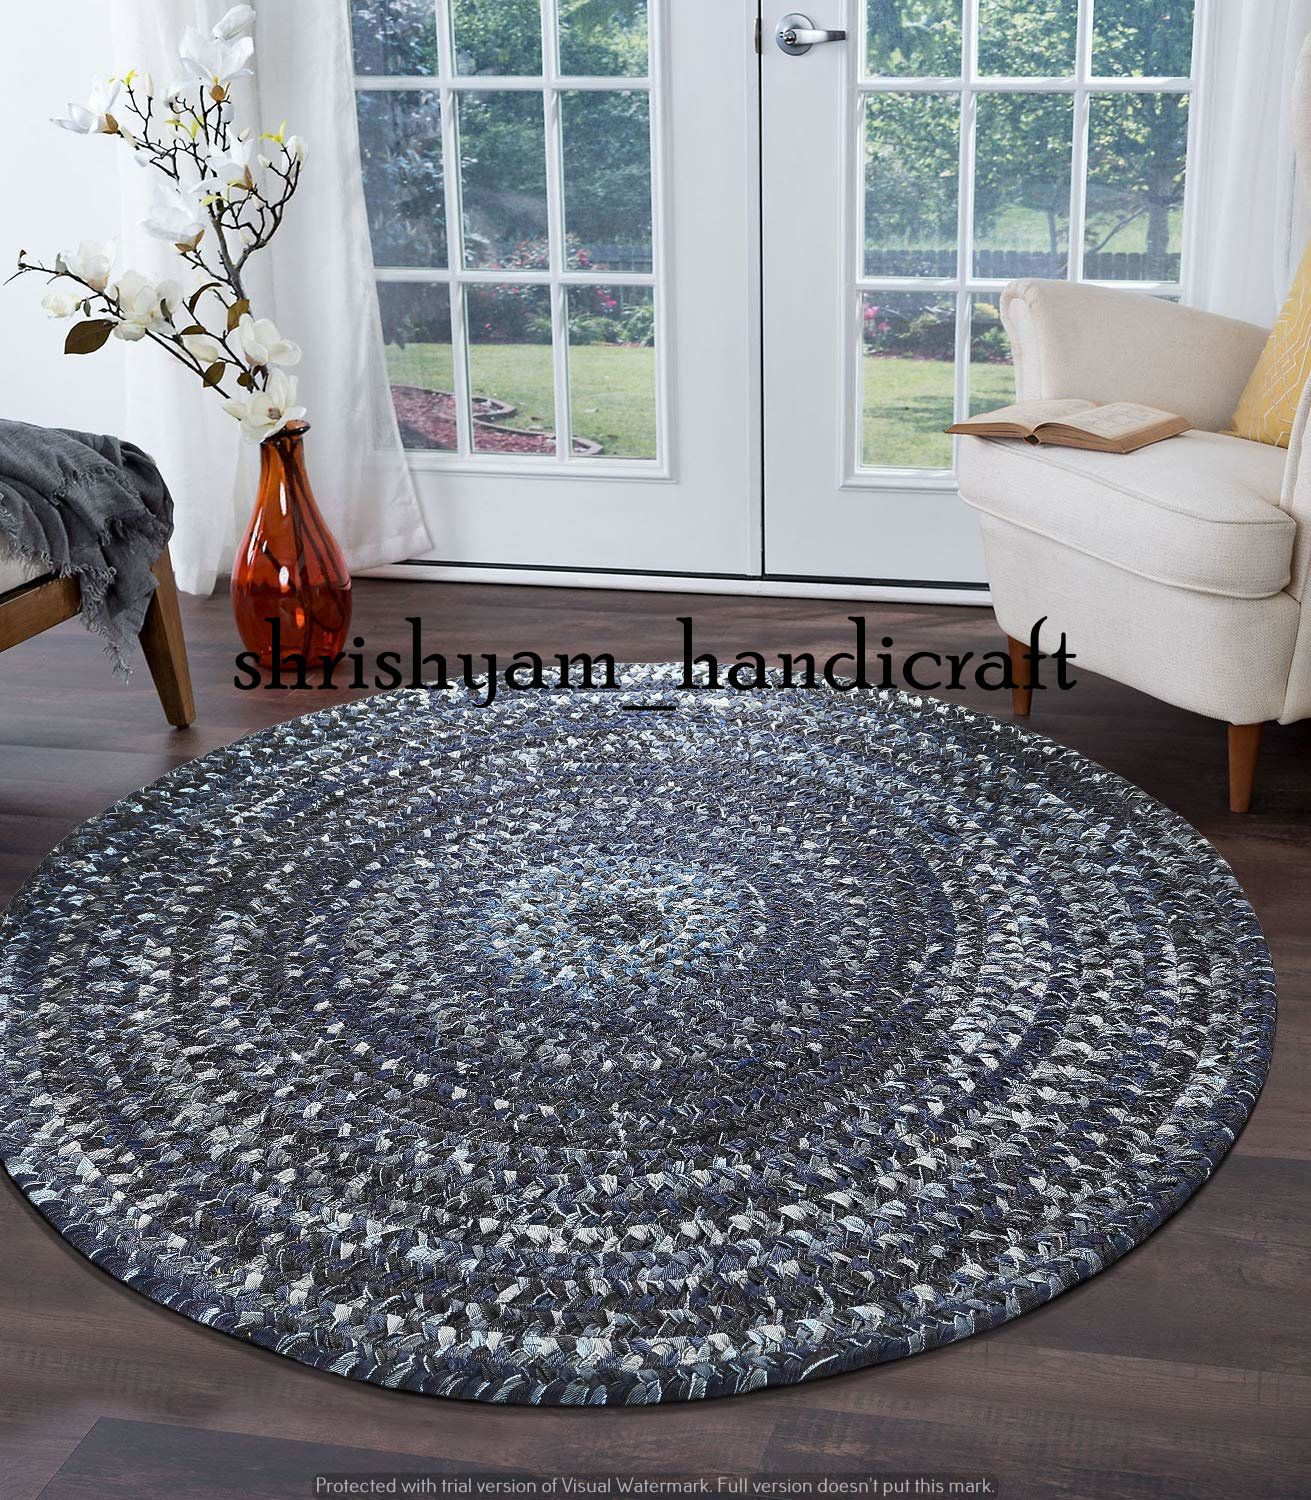 210 Cm Round Rug Carpet Handmade Rag Rug Indian Hand Braided Bohemian Colorful Cotton Chindi Area Rug Cotton Area Rugs Floor Rug Circle Rug In 2020 Floor Area Rugs Floor Rugs Round Rugs